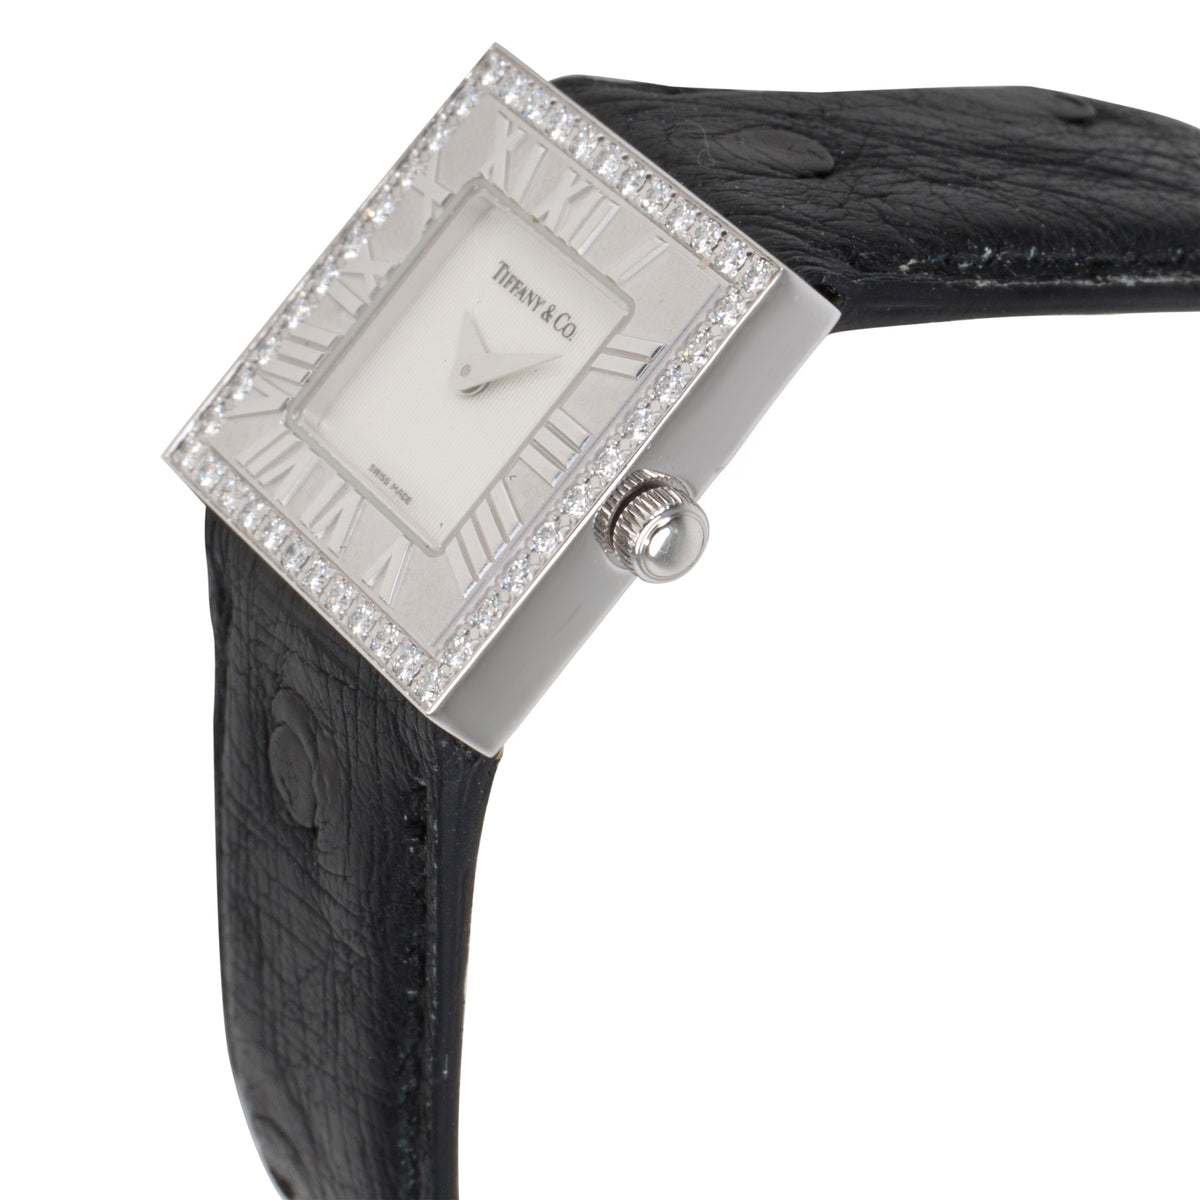 Tiffany & Co. Atlas Atlas Women's Watch in 18kt White Gold